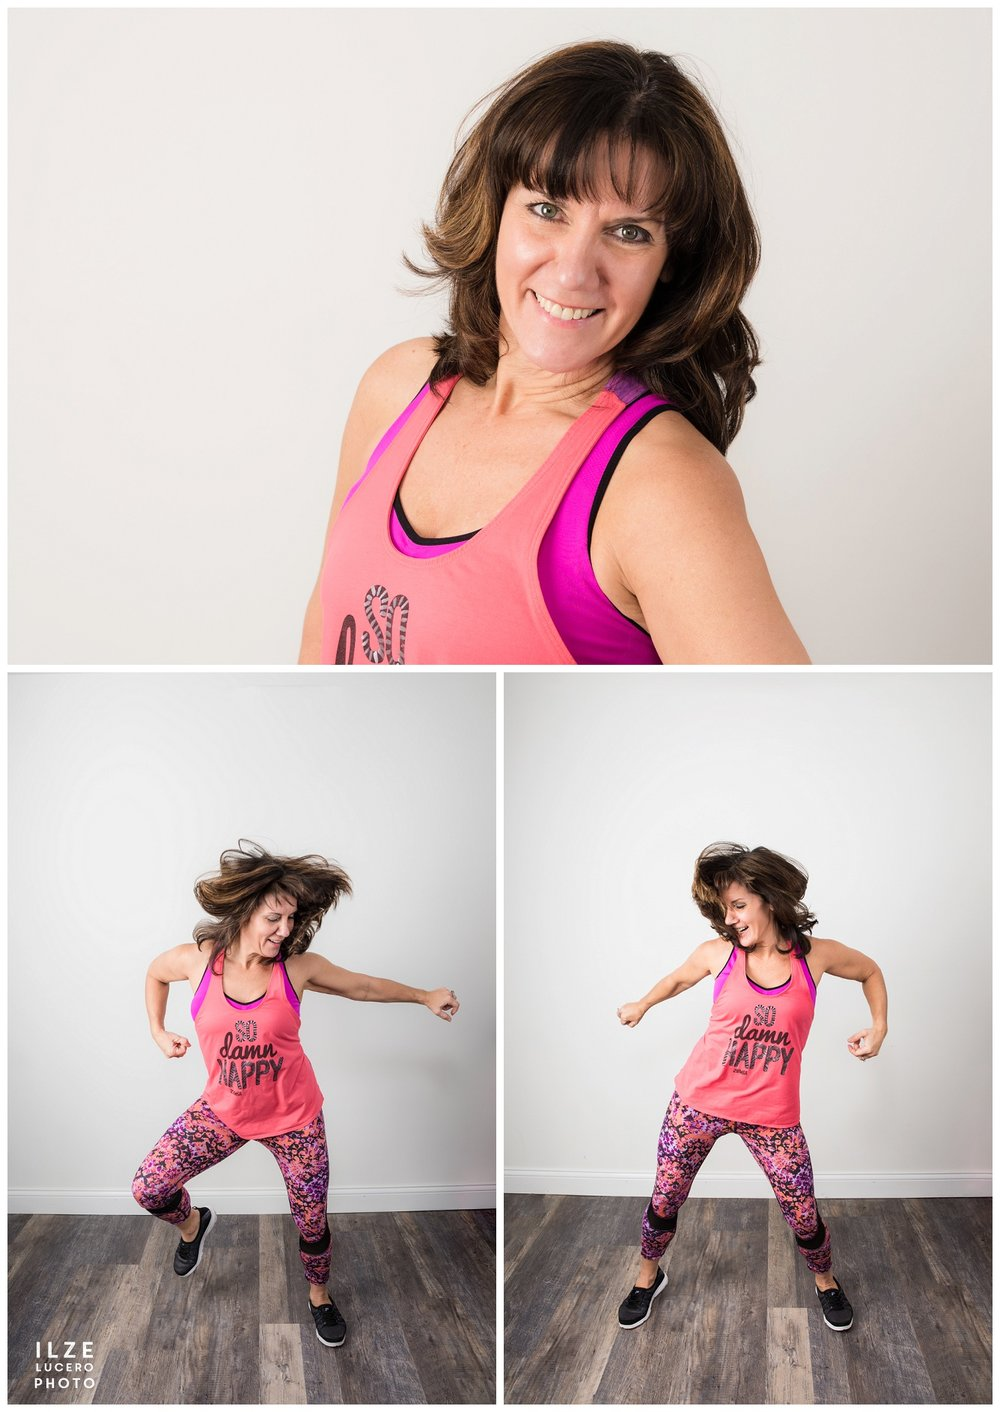 Clarkston Zumba instructor Teressa at Mueva